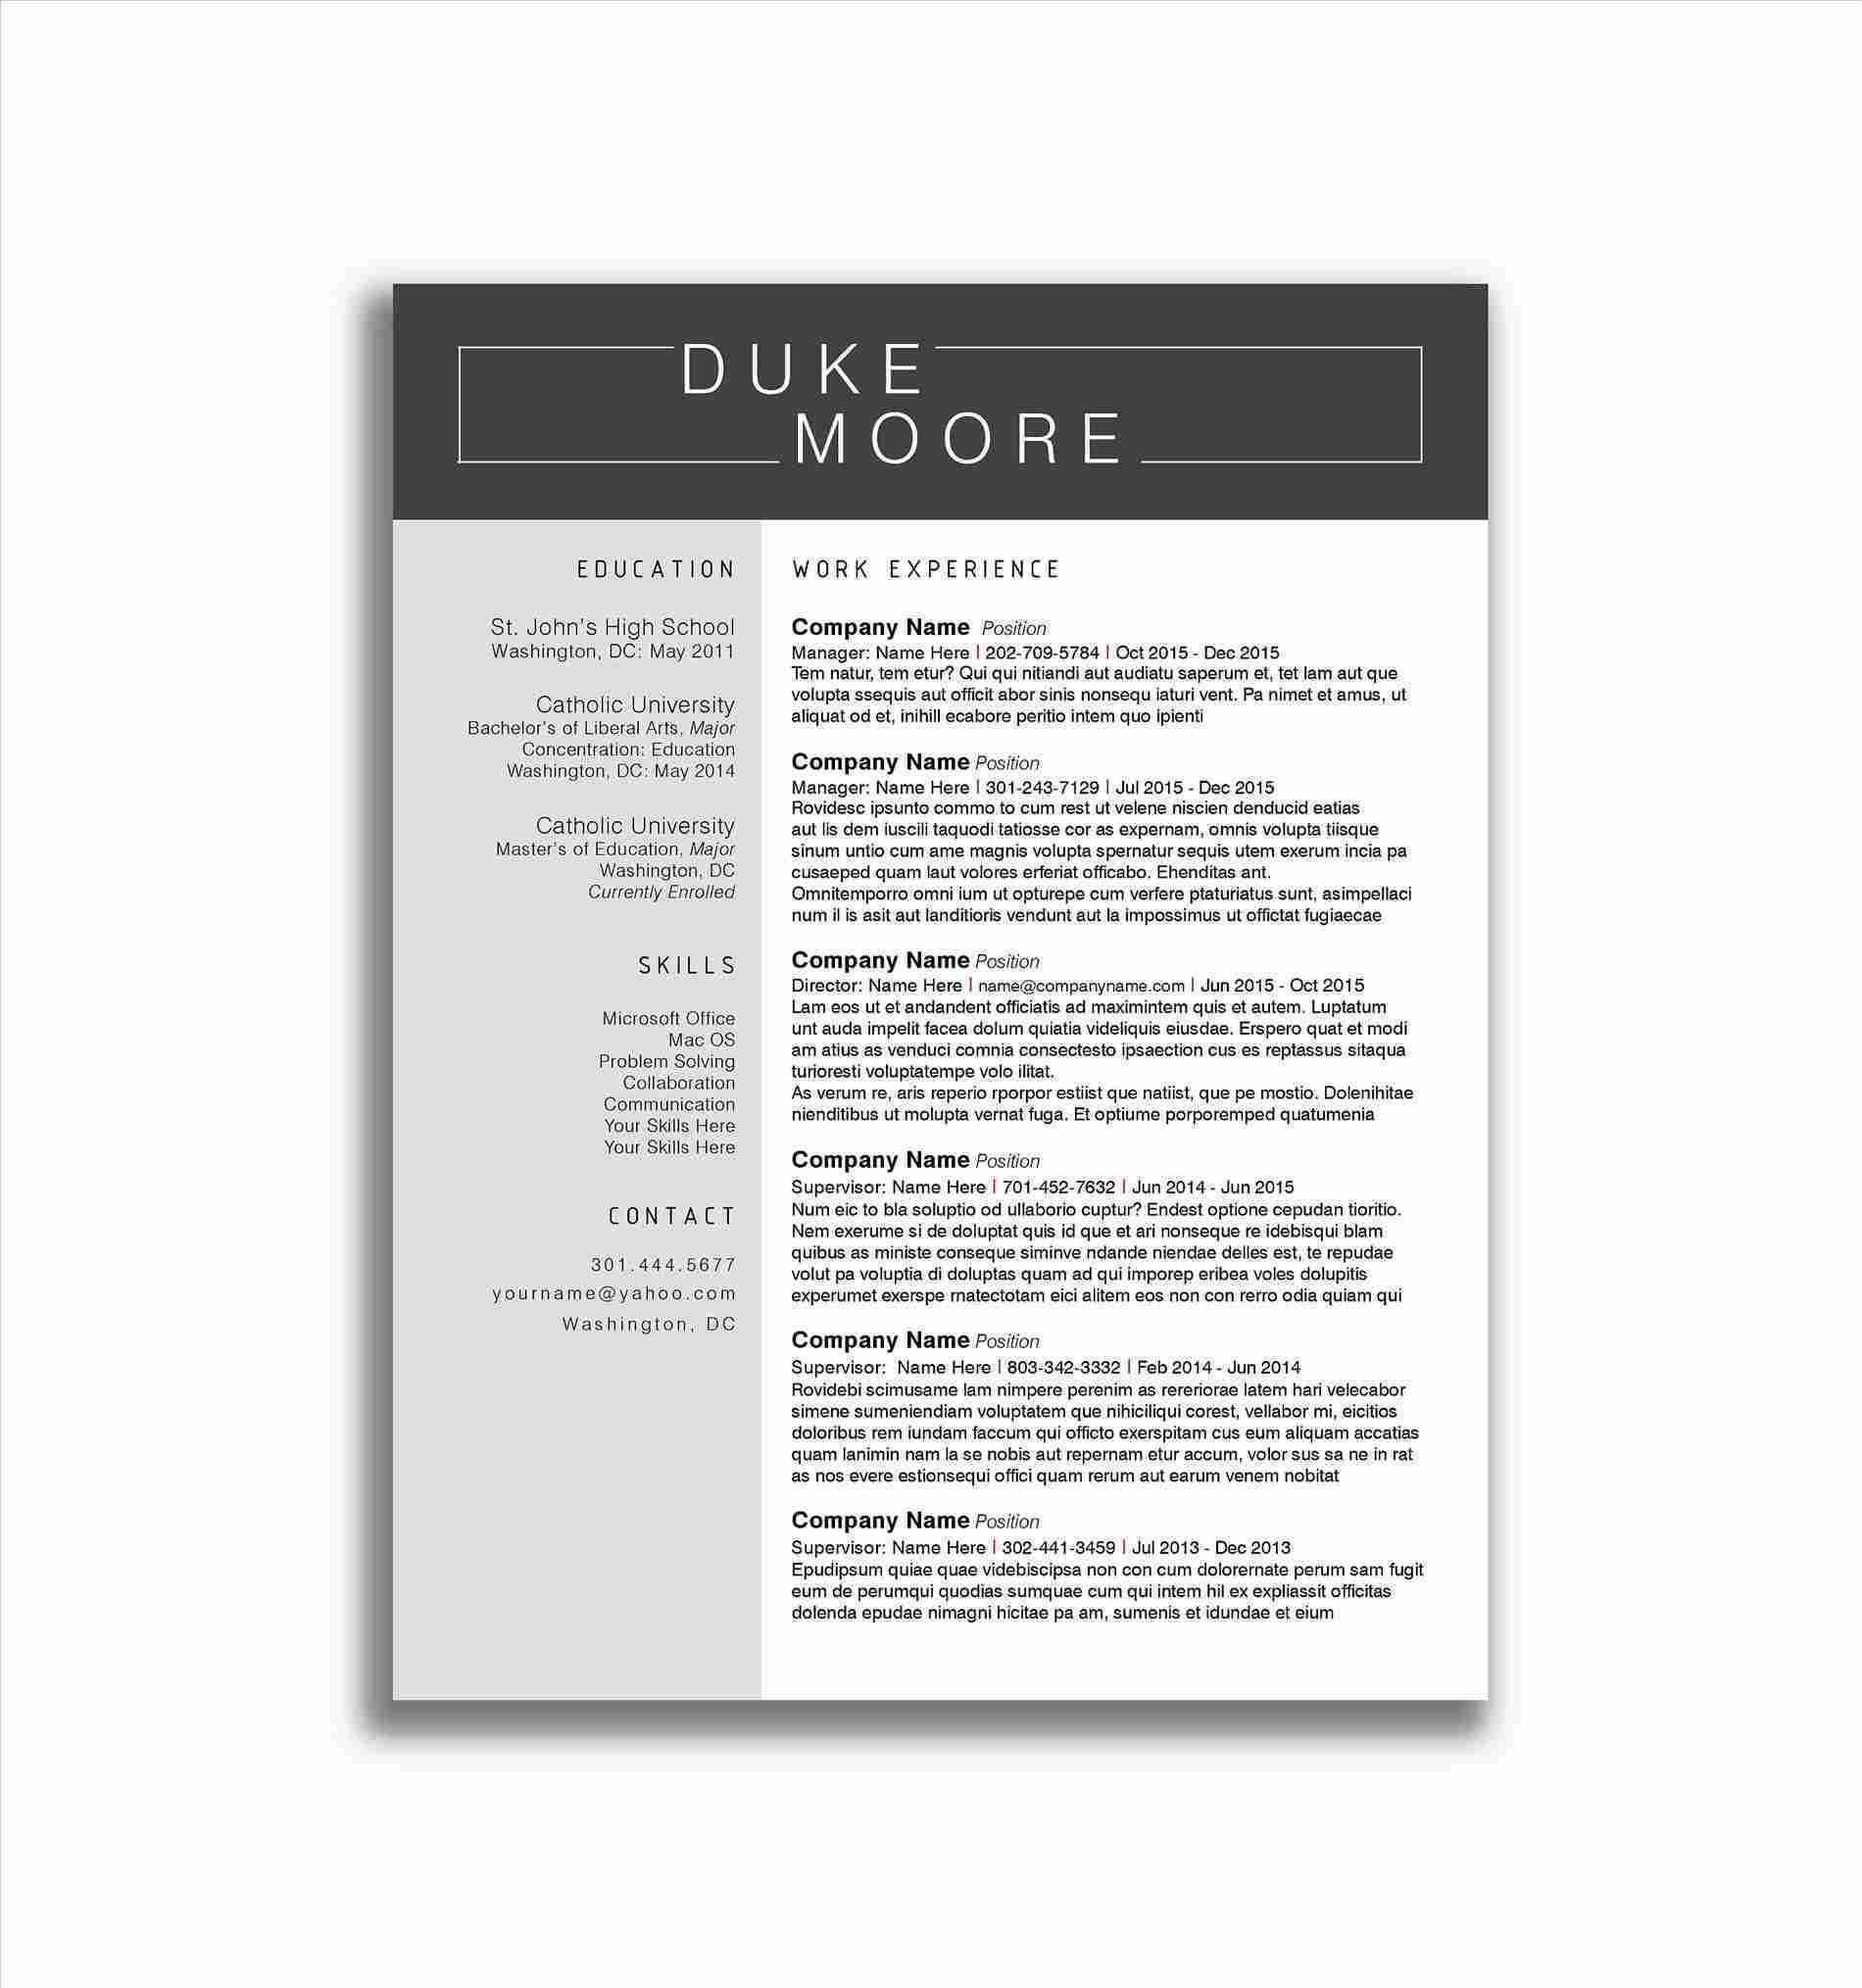 sketch resume template Collection-sketch 3 resume template 3-t